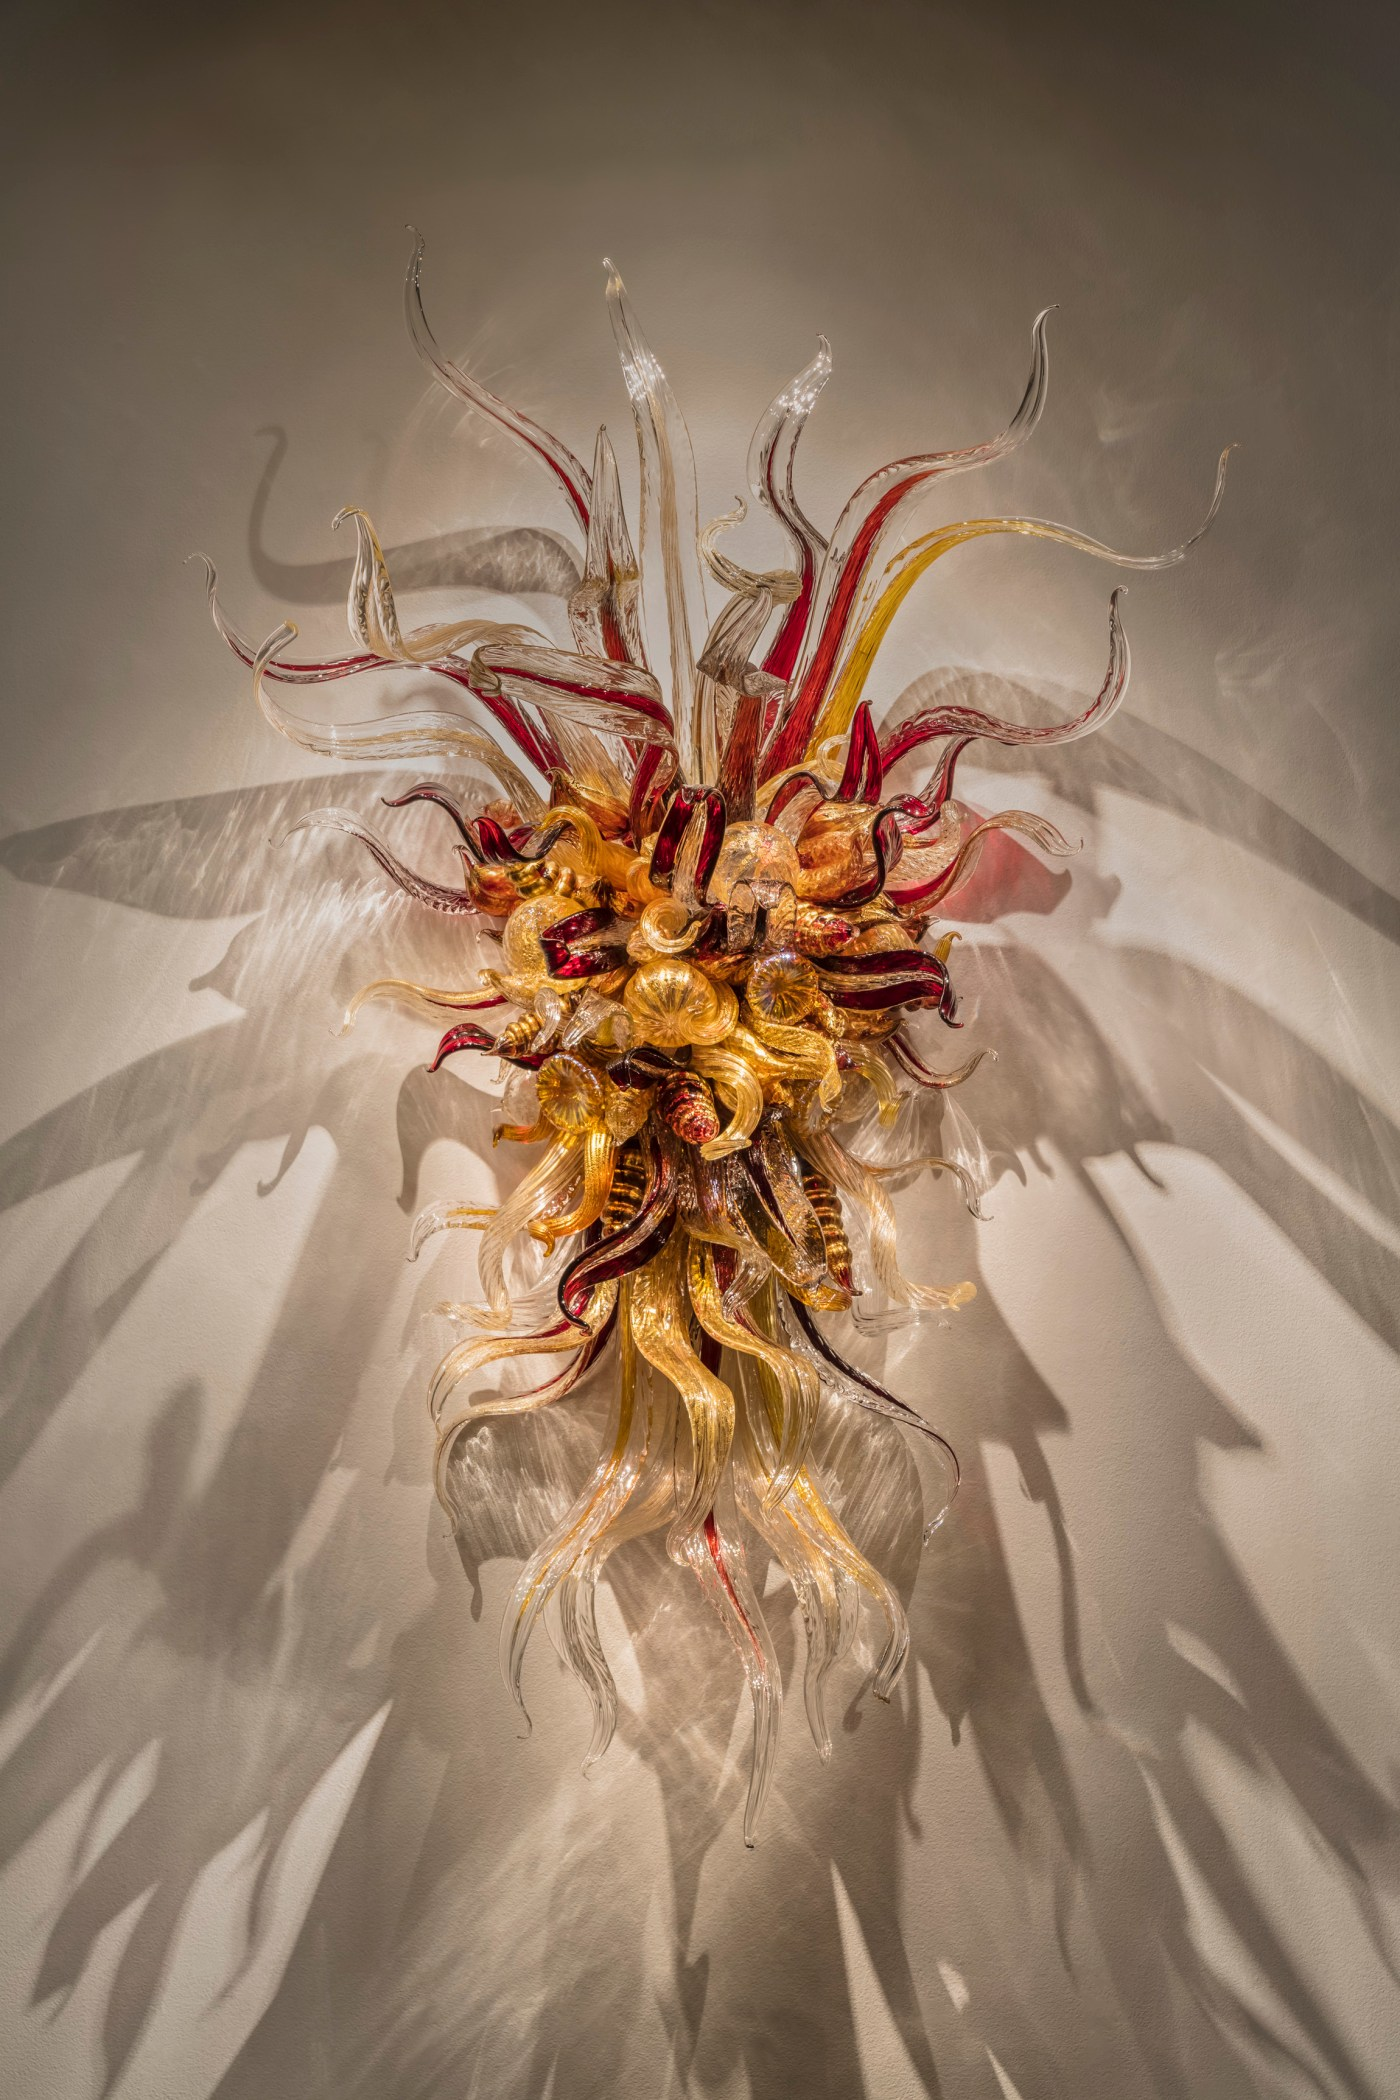 Cranberry and Sienna Sconce 紅莓與赭色壁燈, 2018, 191 x 122 x 61 cm © Chihuly Studio